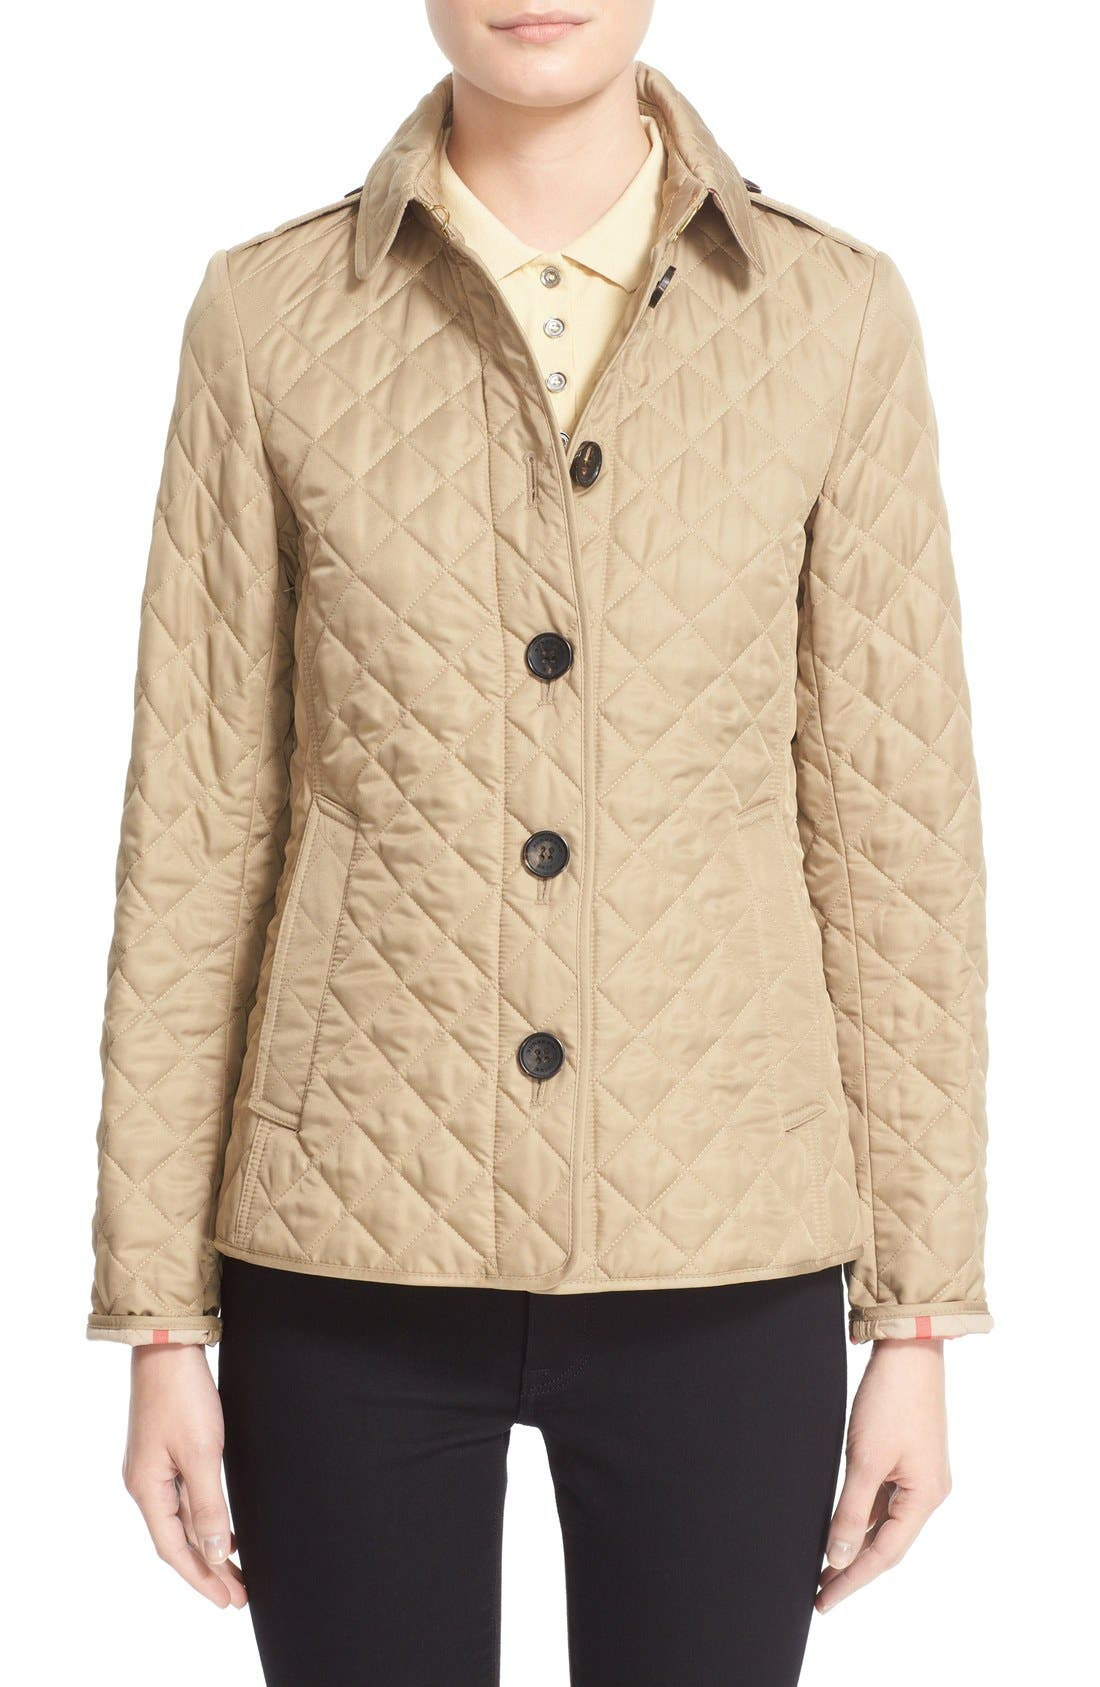 Ashurst Quilted Jacket,                         Main,                         color, 270